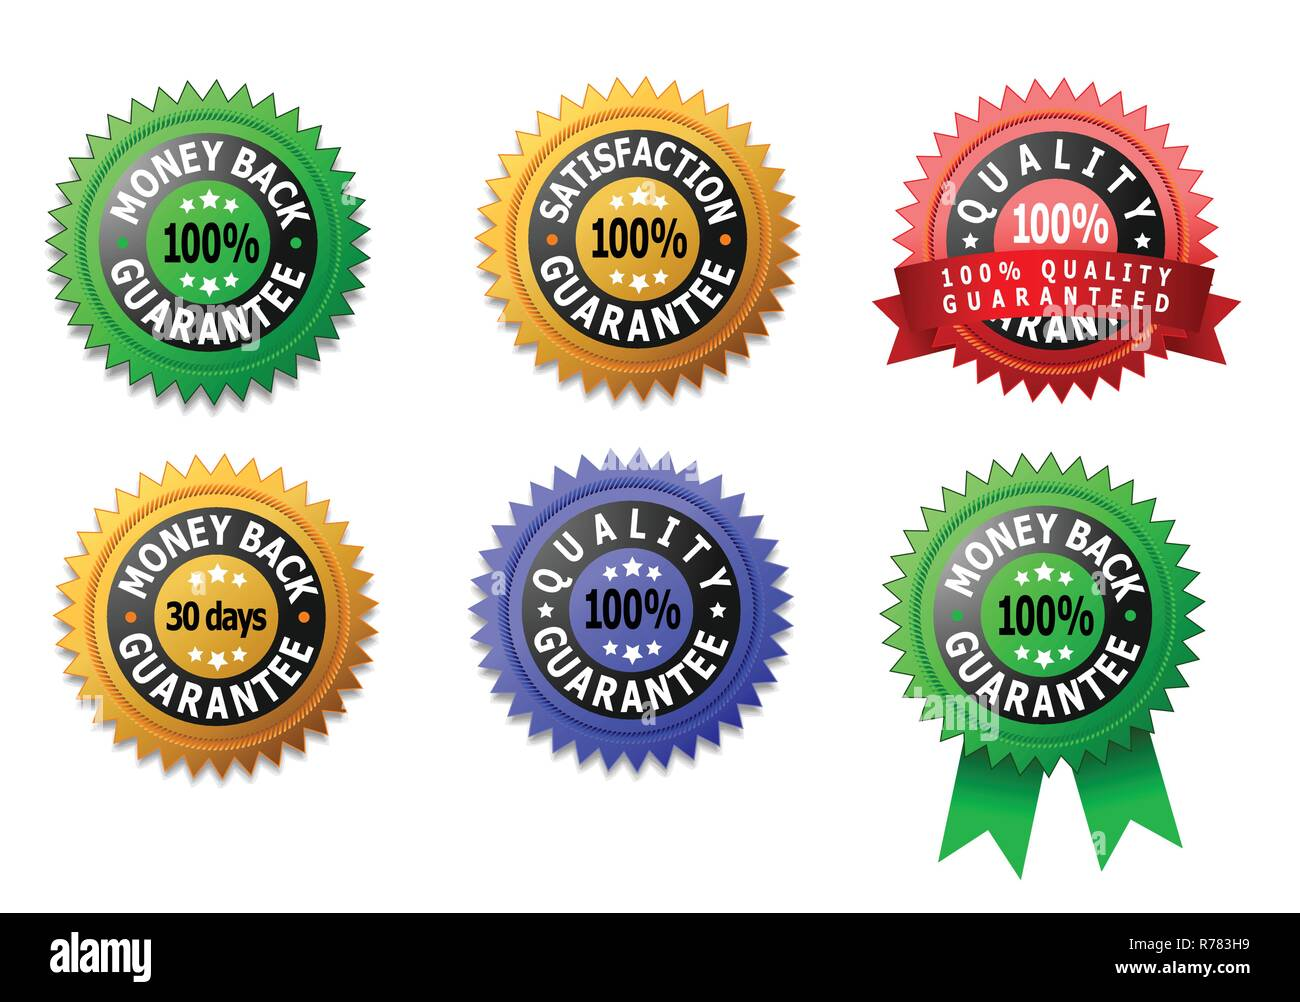 Vector labels for satisfaction, quality and money back guaranteed - Stock Vector